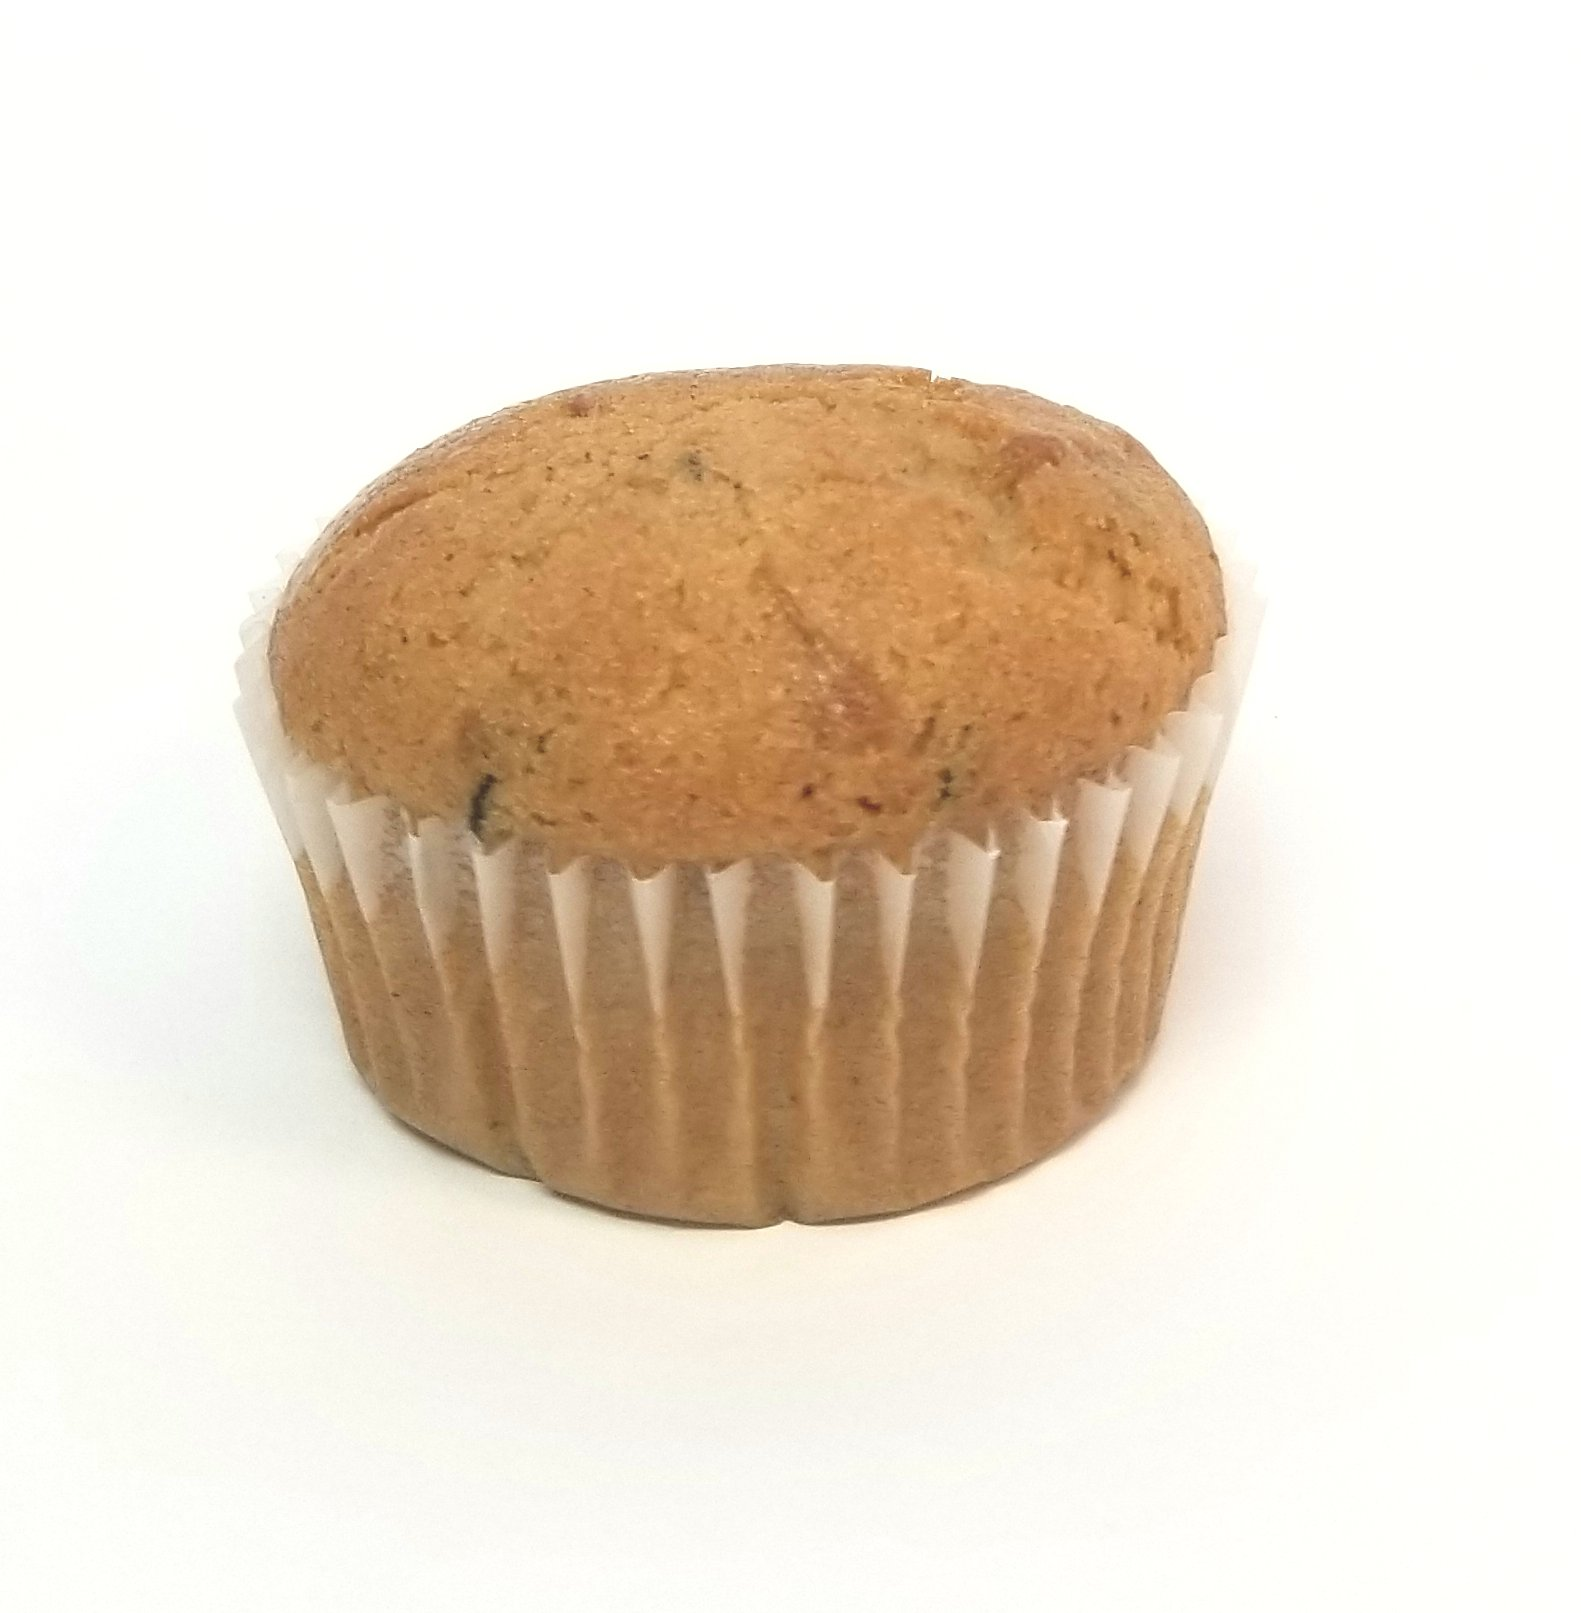 Delicious Low Carb Gluten-Free Cinnamon Spice Zucchini Muffins 12 Count Value Pack by Lilee's Gourmet Bakery by Lilee's Z-Muffins